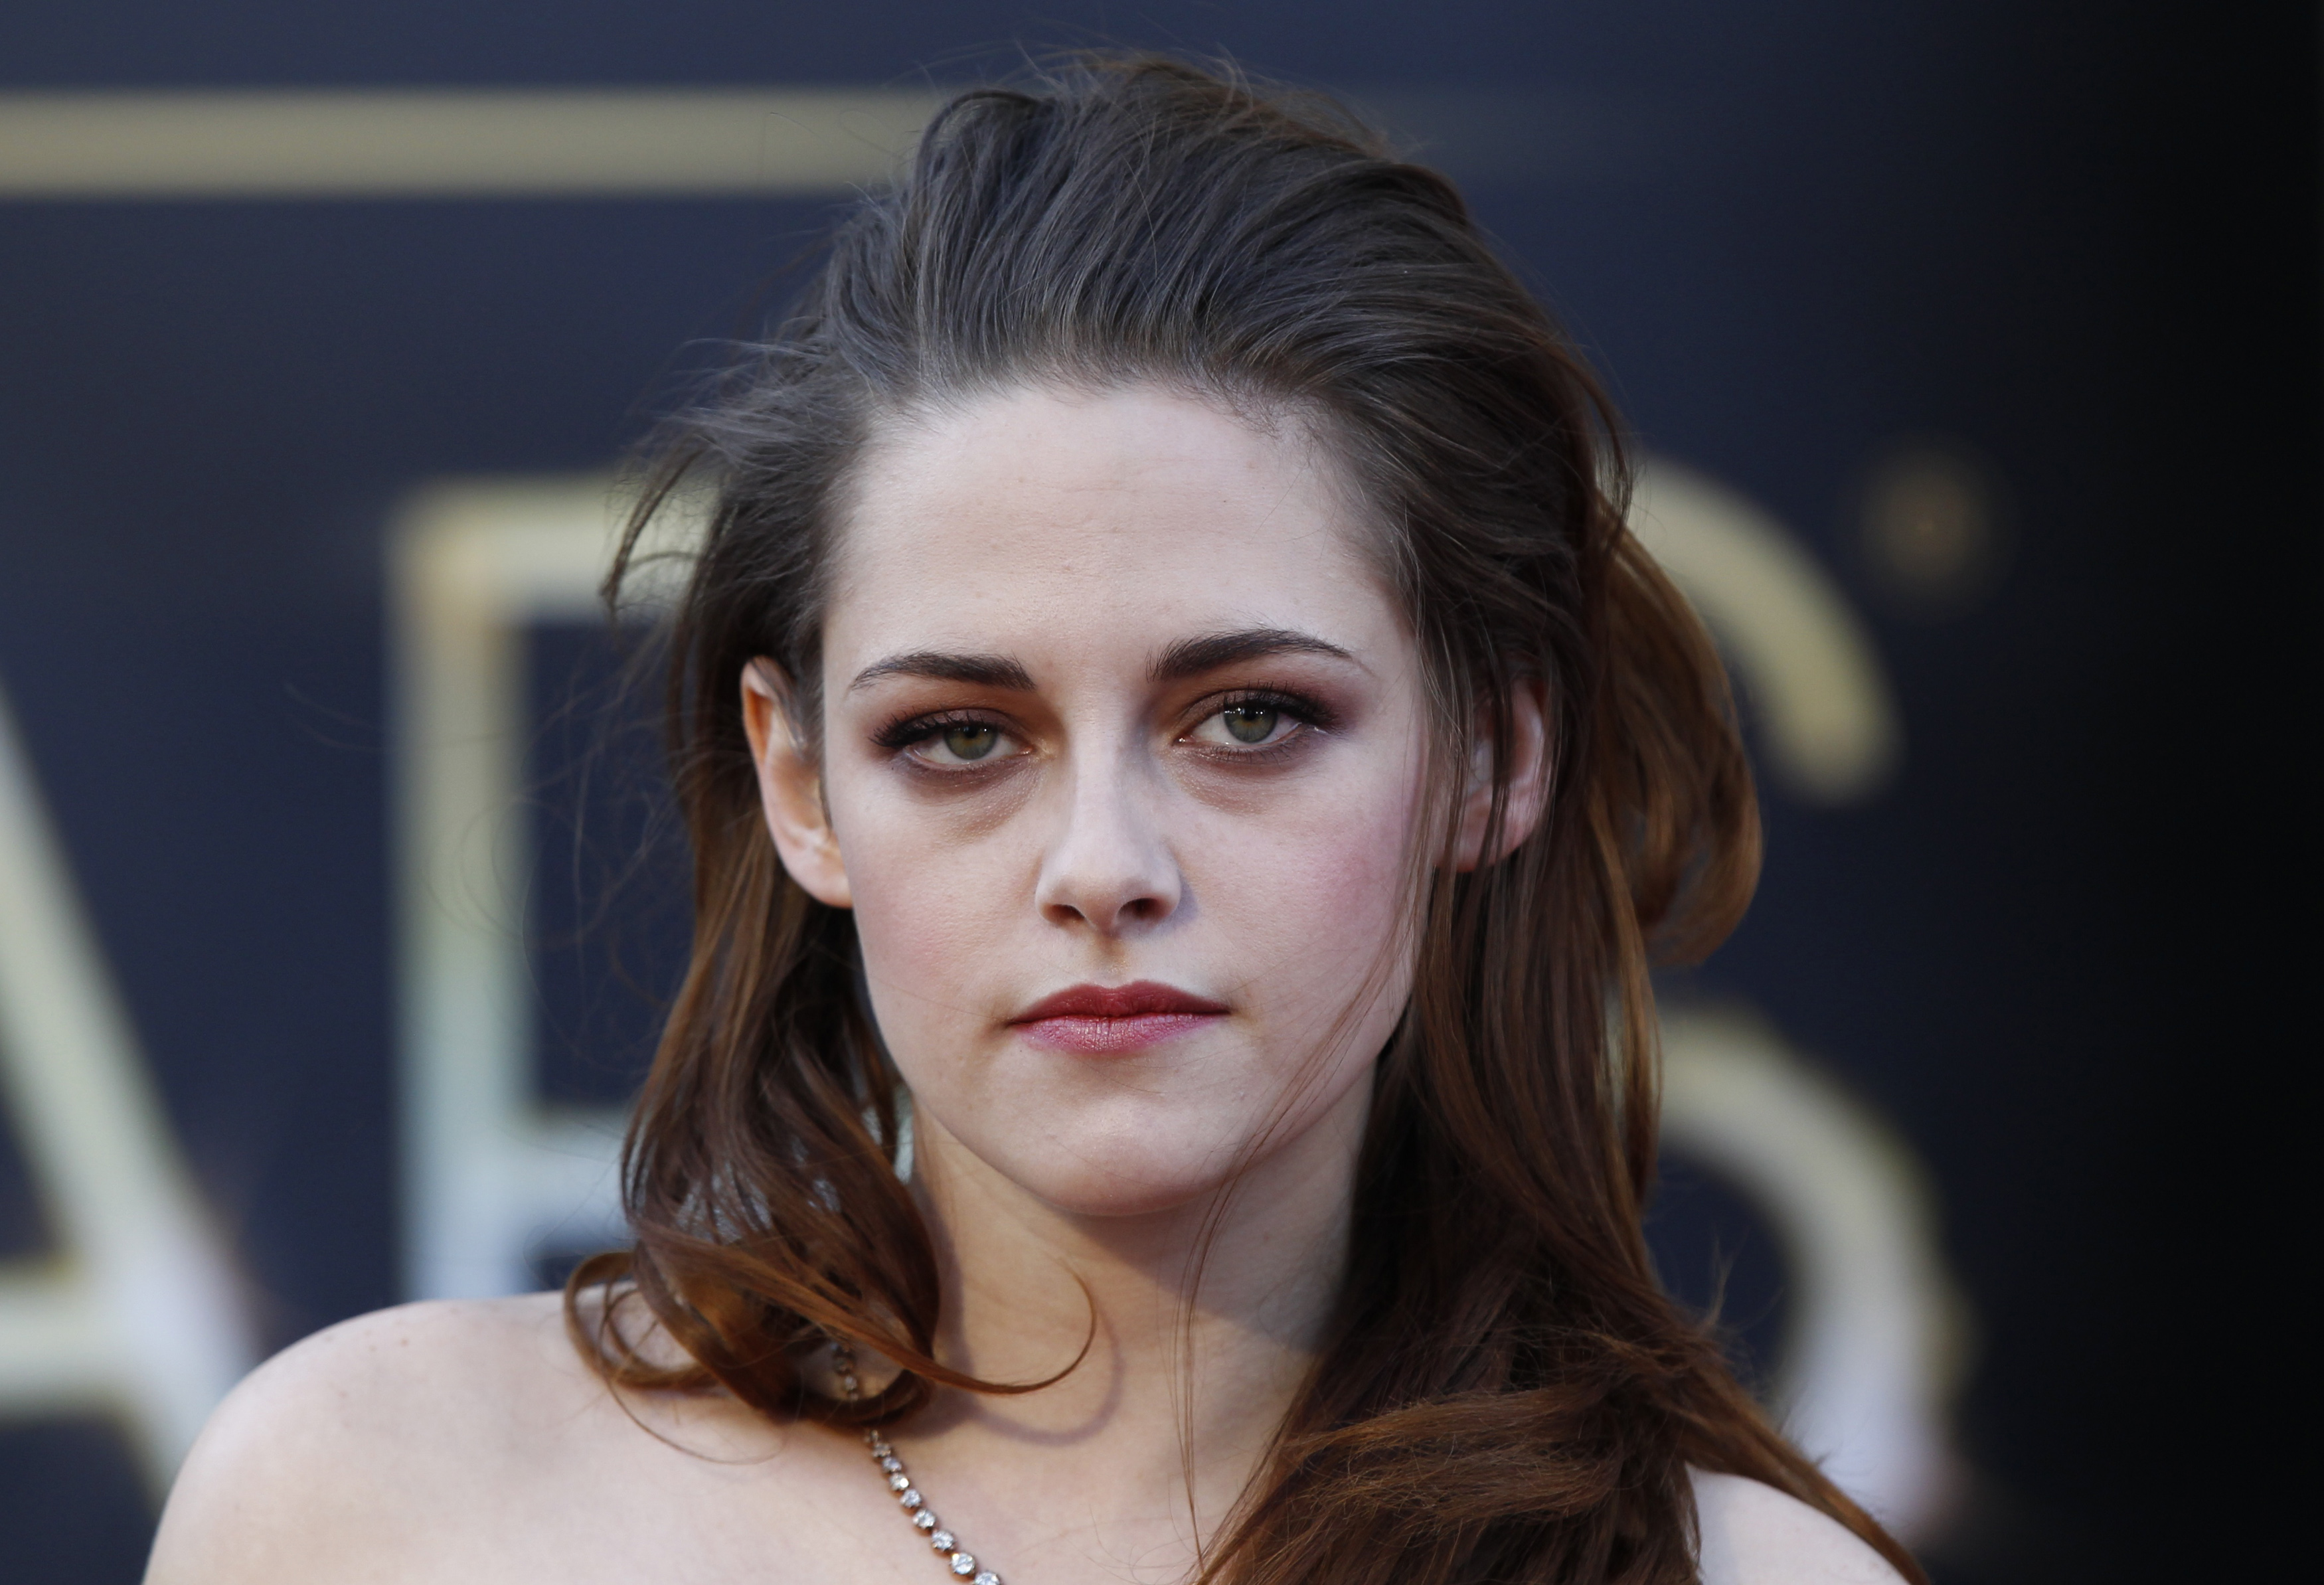 Kristen Stewart Tired Look 107.97 Kb